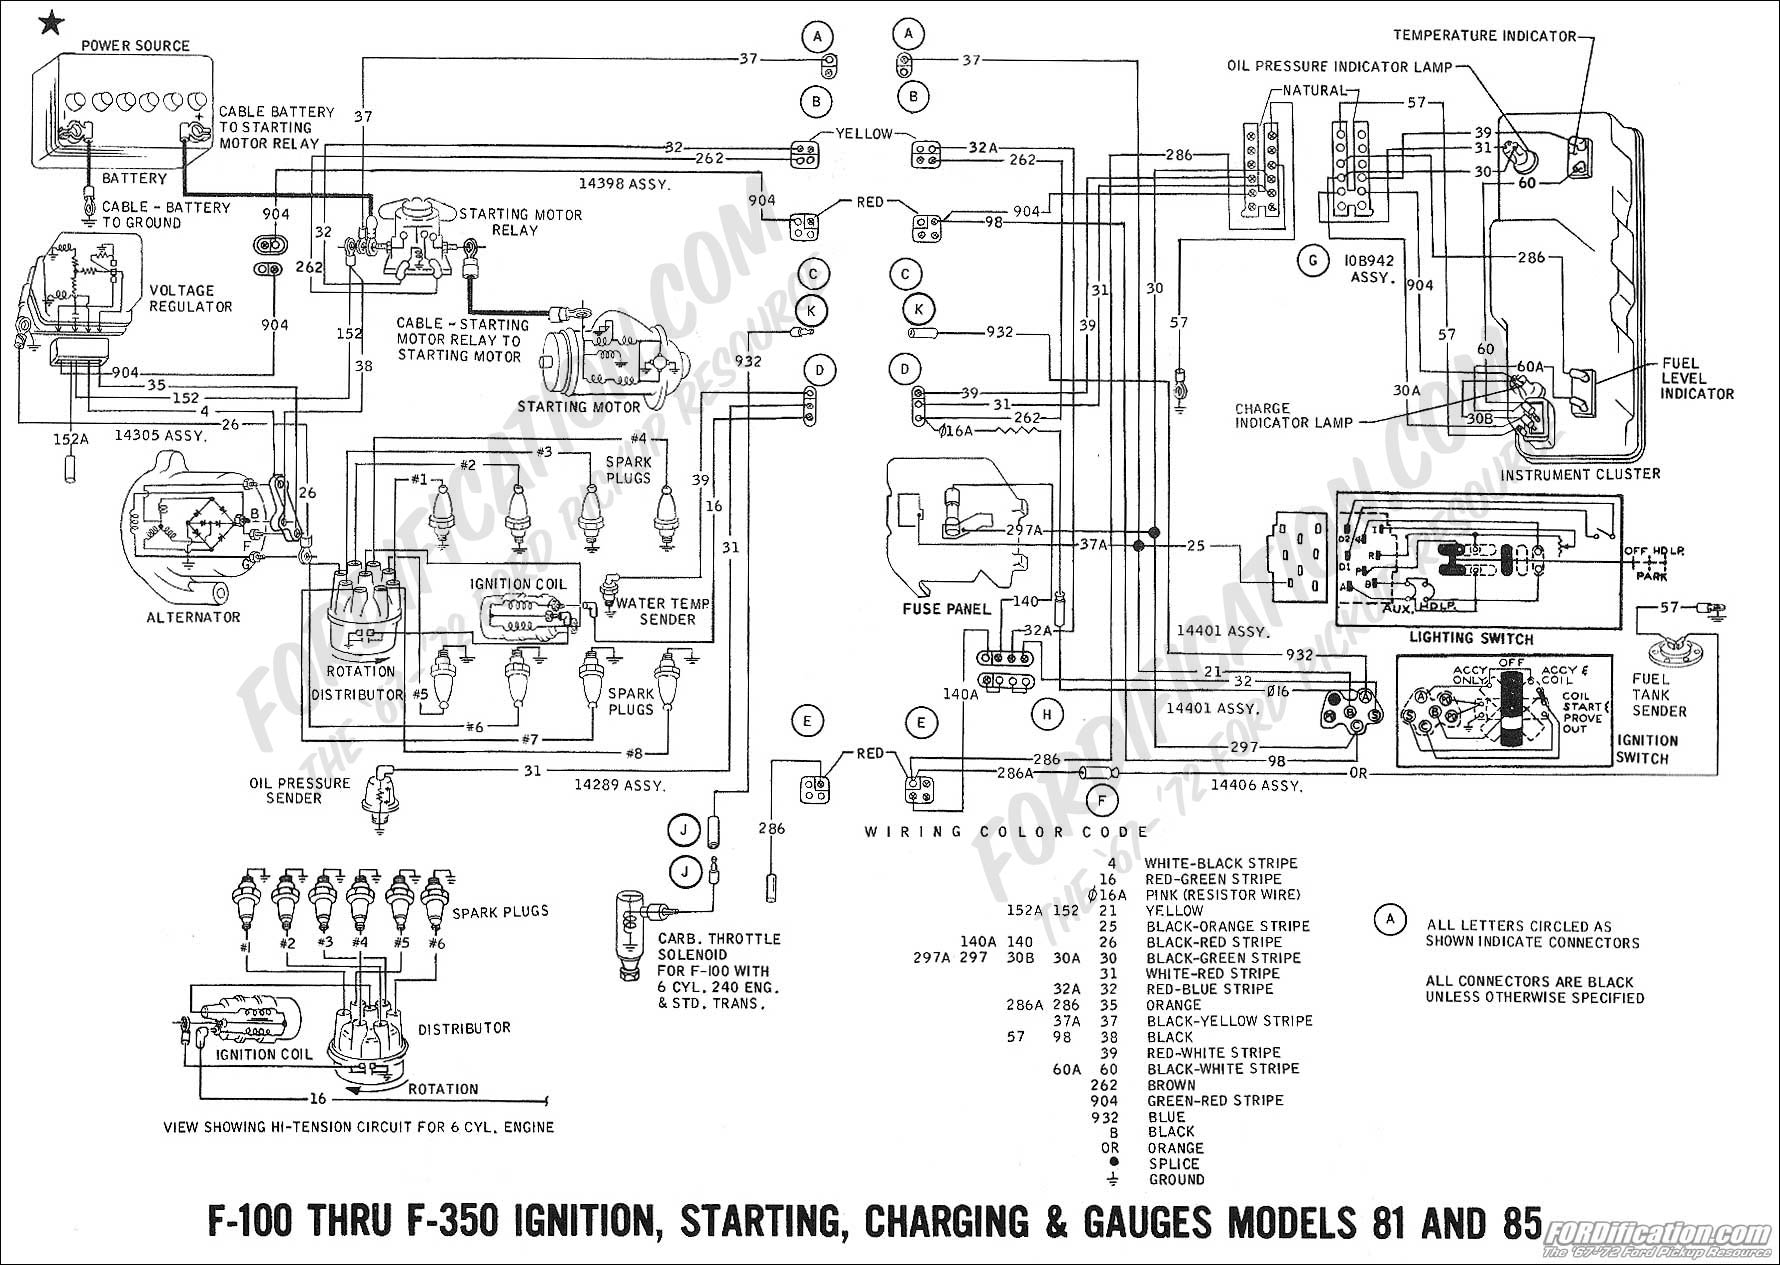 [DIAGRAM_5LK]  4B60 87 Corvette Dashboard Wiring Diagram Free Download  1fdf56ea7eaf16f2afbaf61c08c4e6f3 | Wiring Library | 1966 Corvette Wiring Diagram Pdf |  | Wiring Library